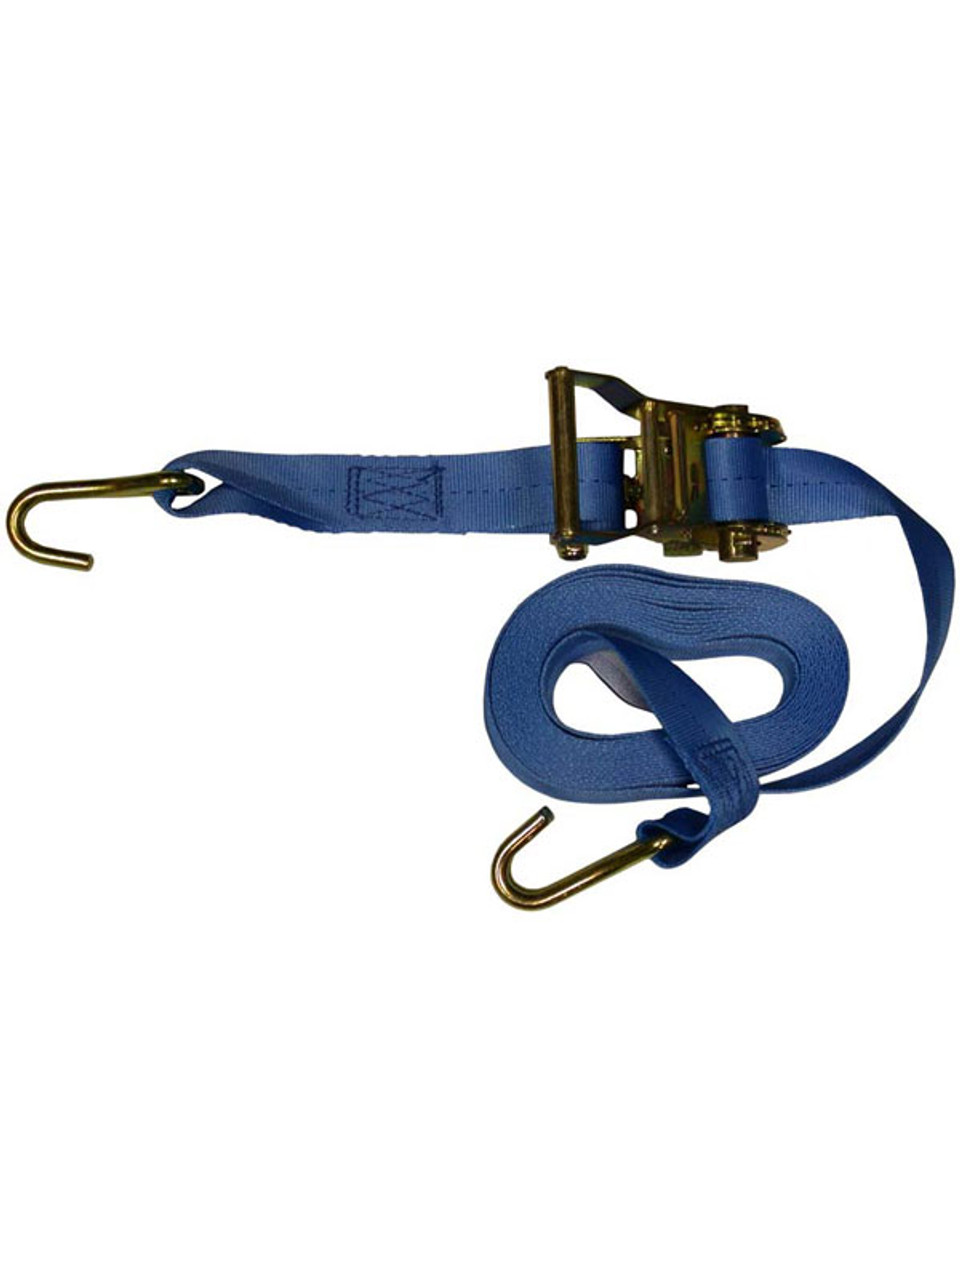 "RTS-13820 --- Standard Duty Tie Down Strap with Ratchet - J Hook End Fittings - 1-3/8"" x 20'"